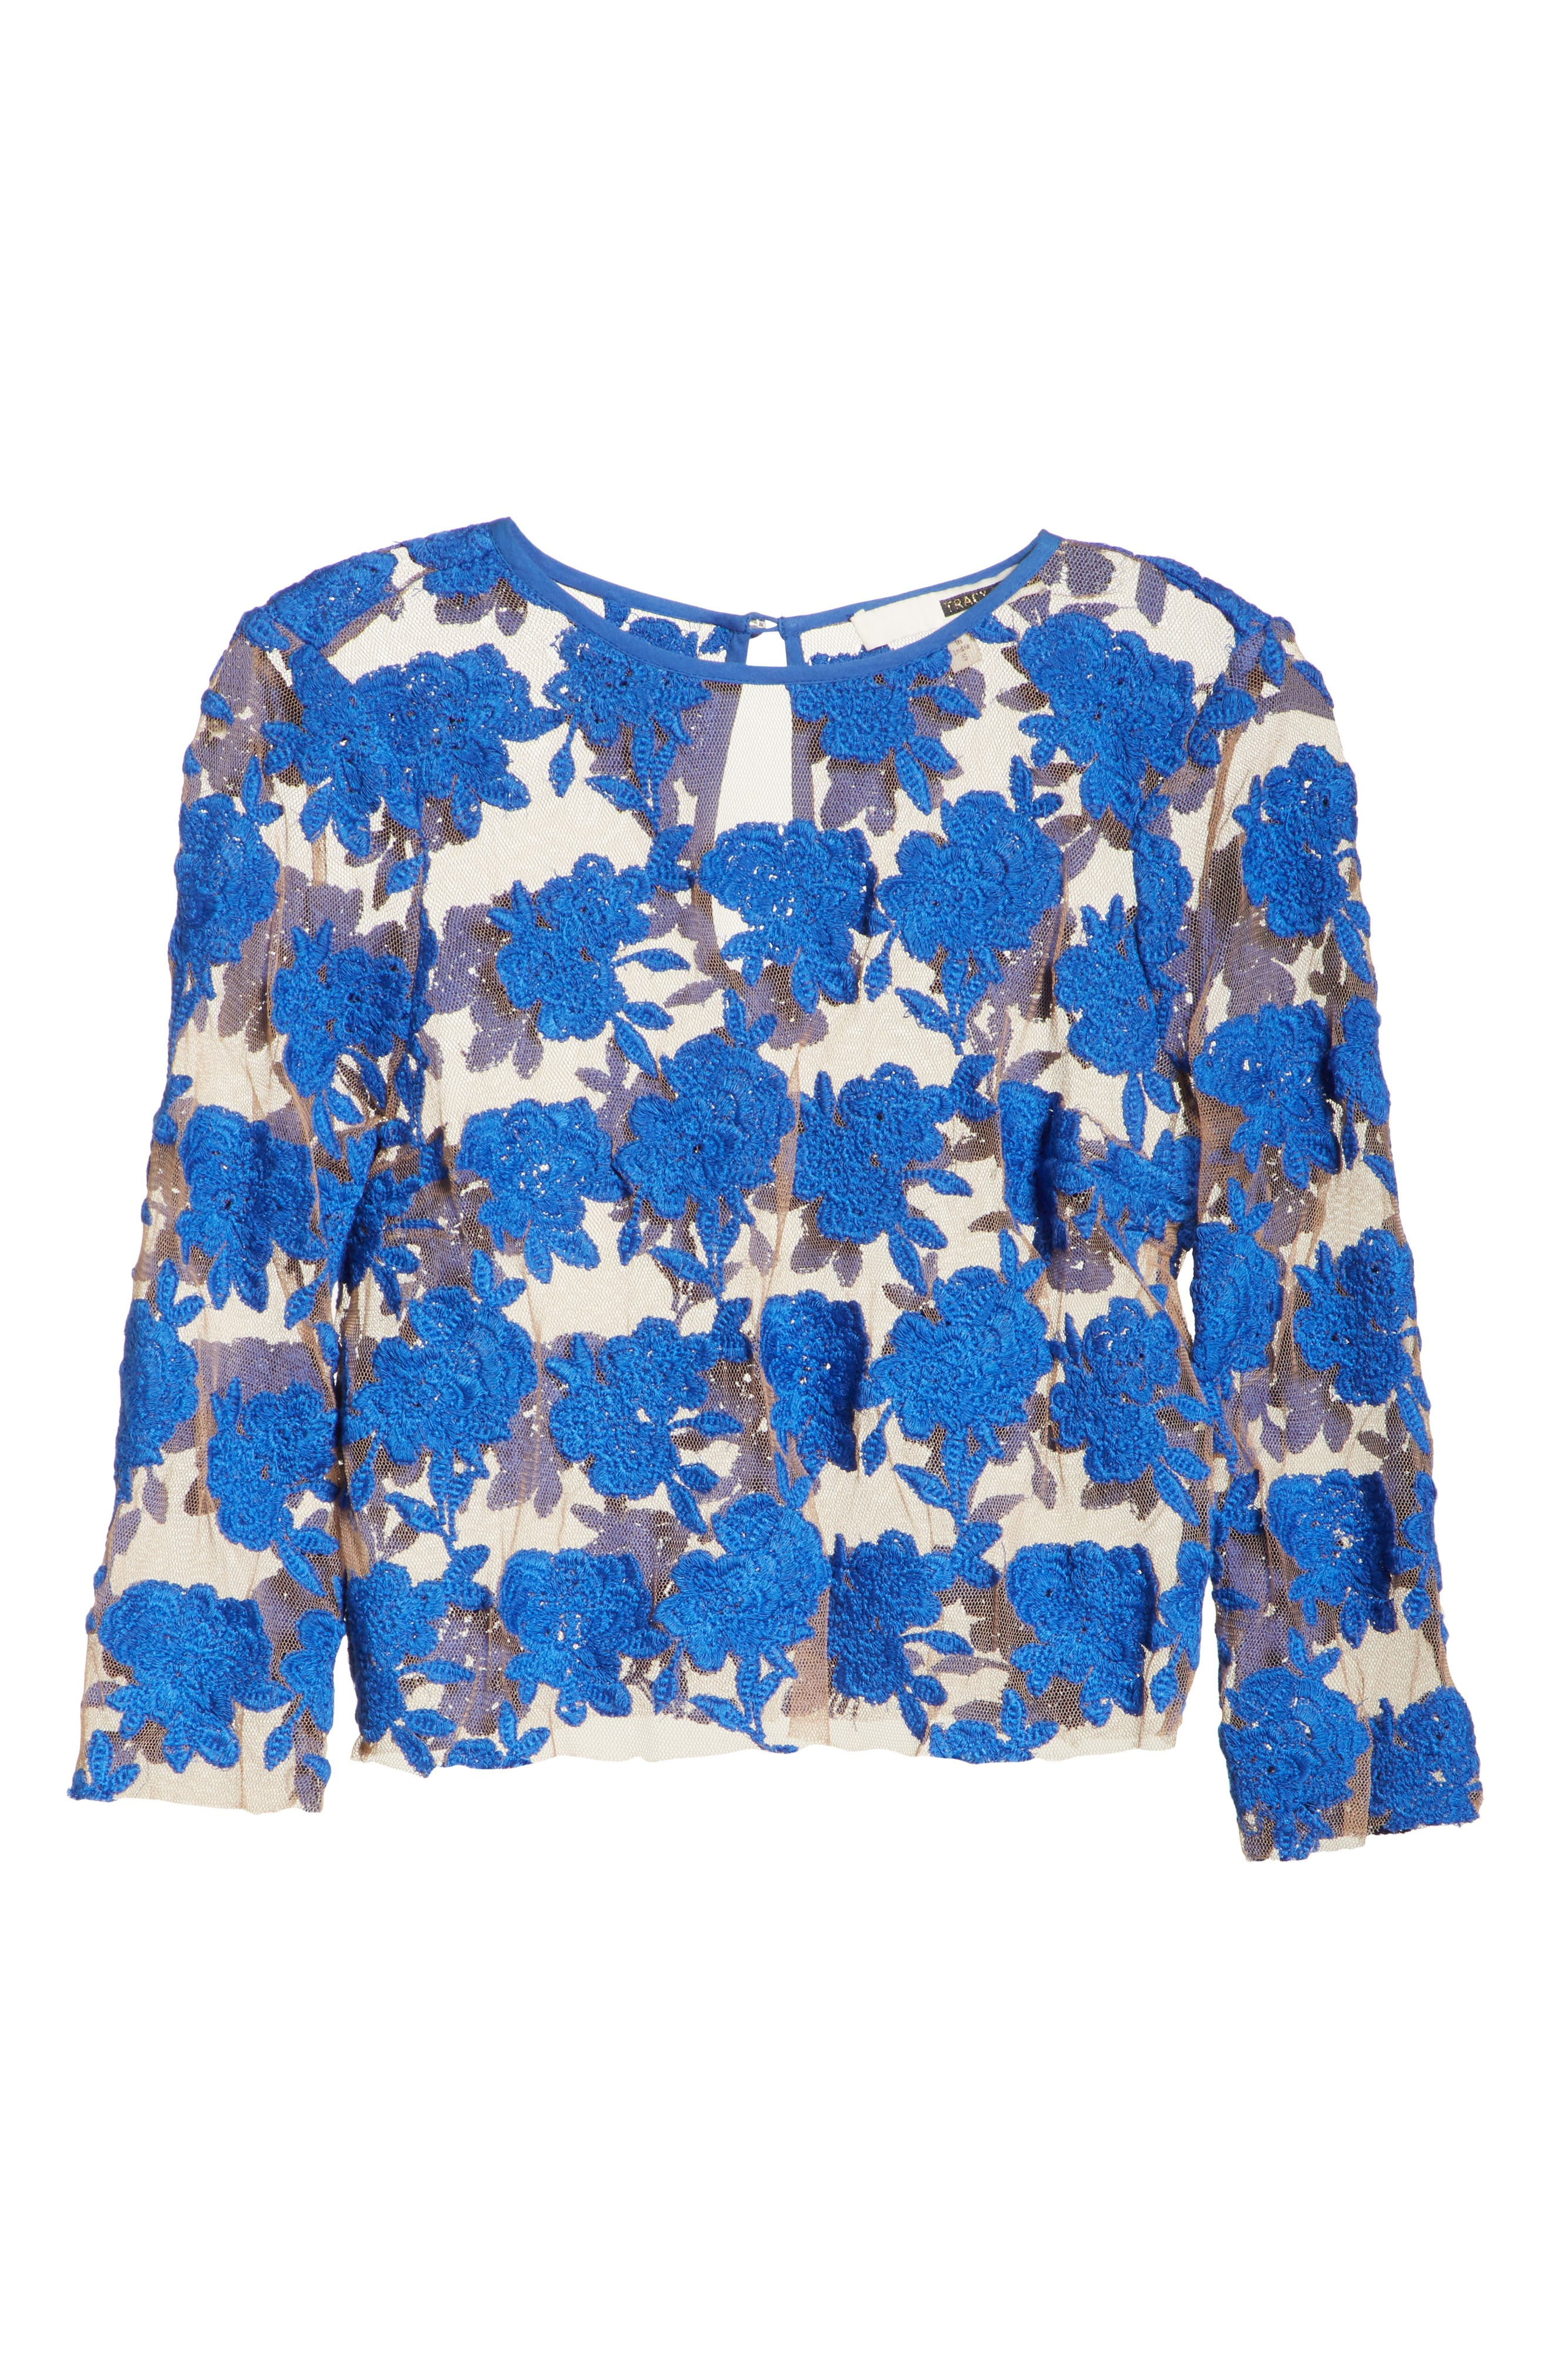 Sheer Embroidered Floral Top,                             Alternate thumbnail 6, color,                             Blue Pigment